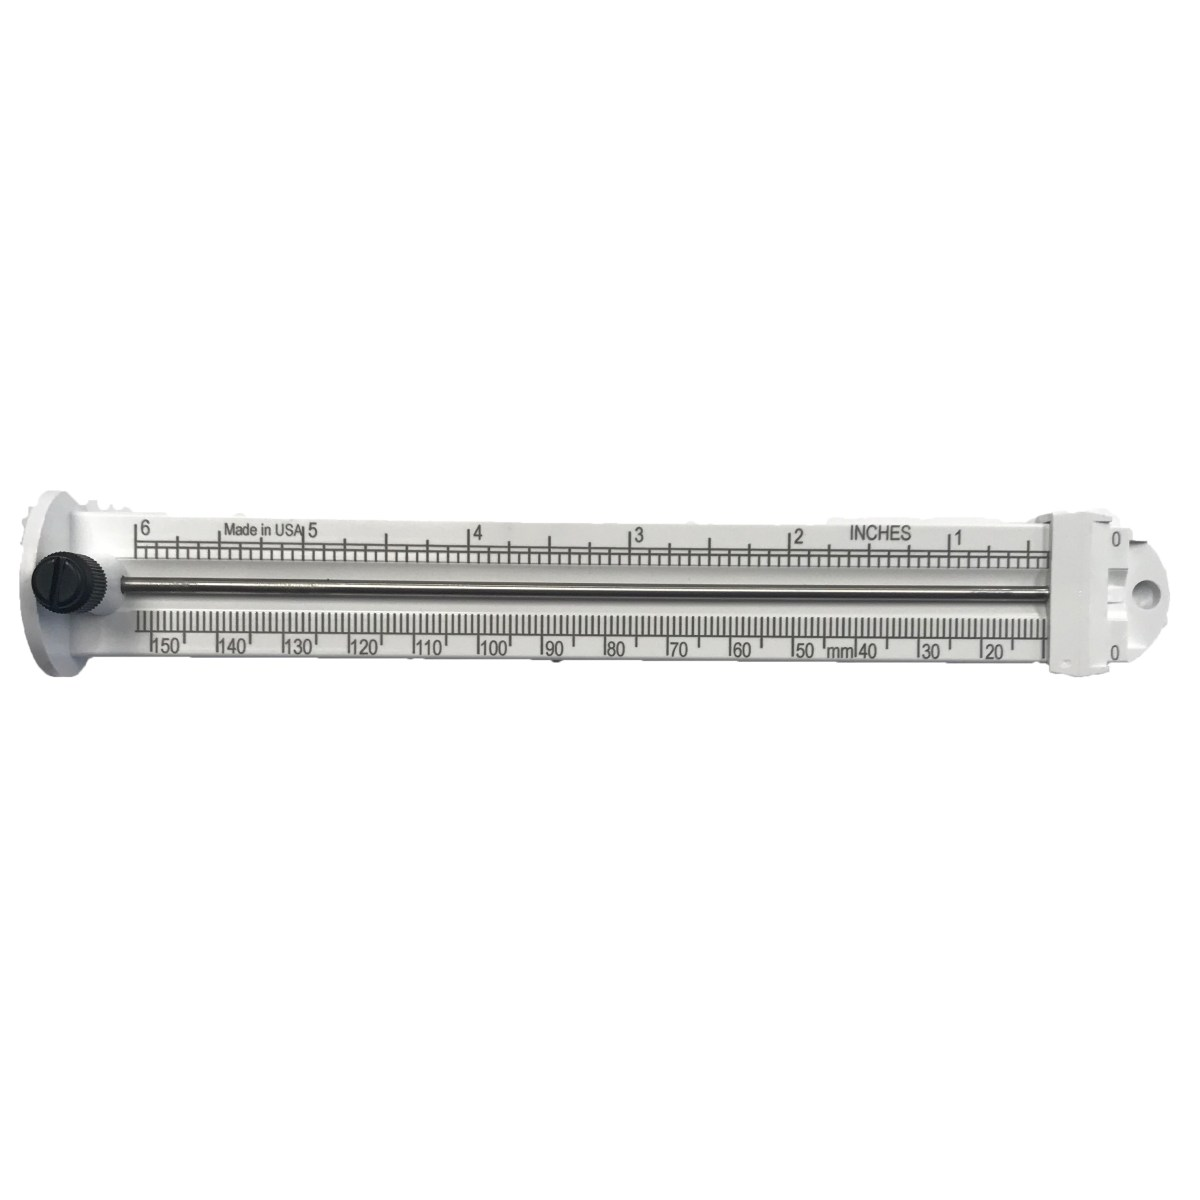 fire-proofing depth gauge